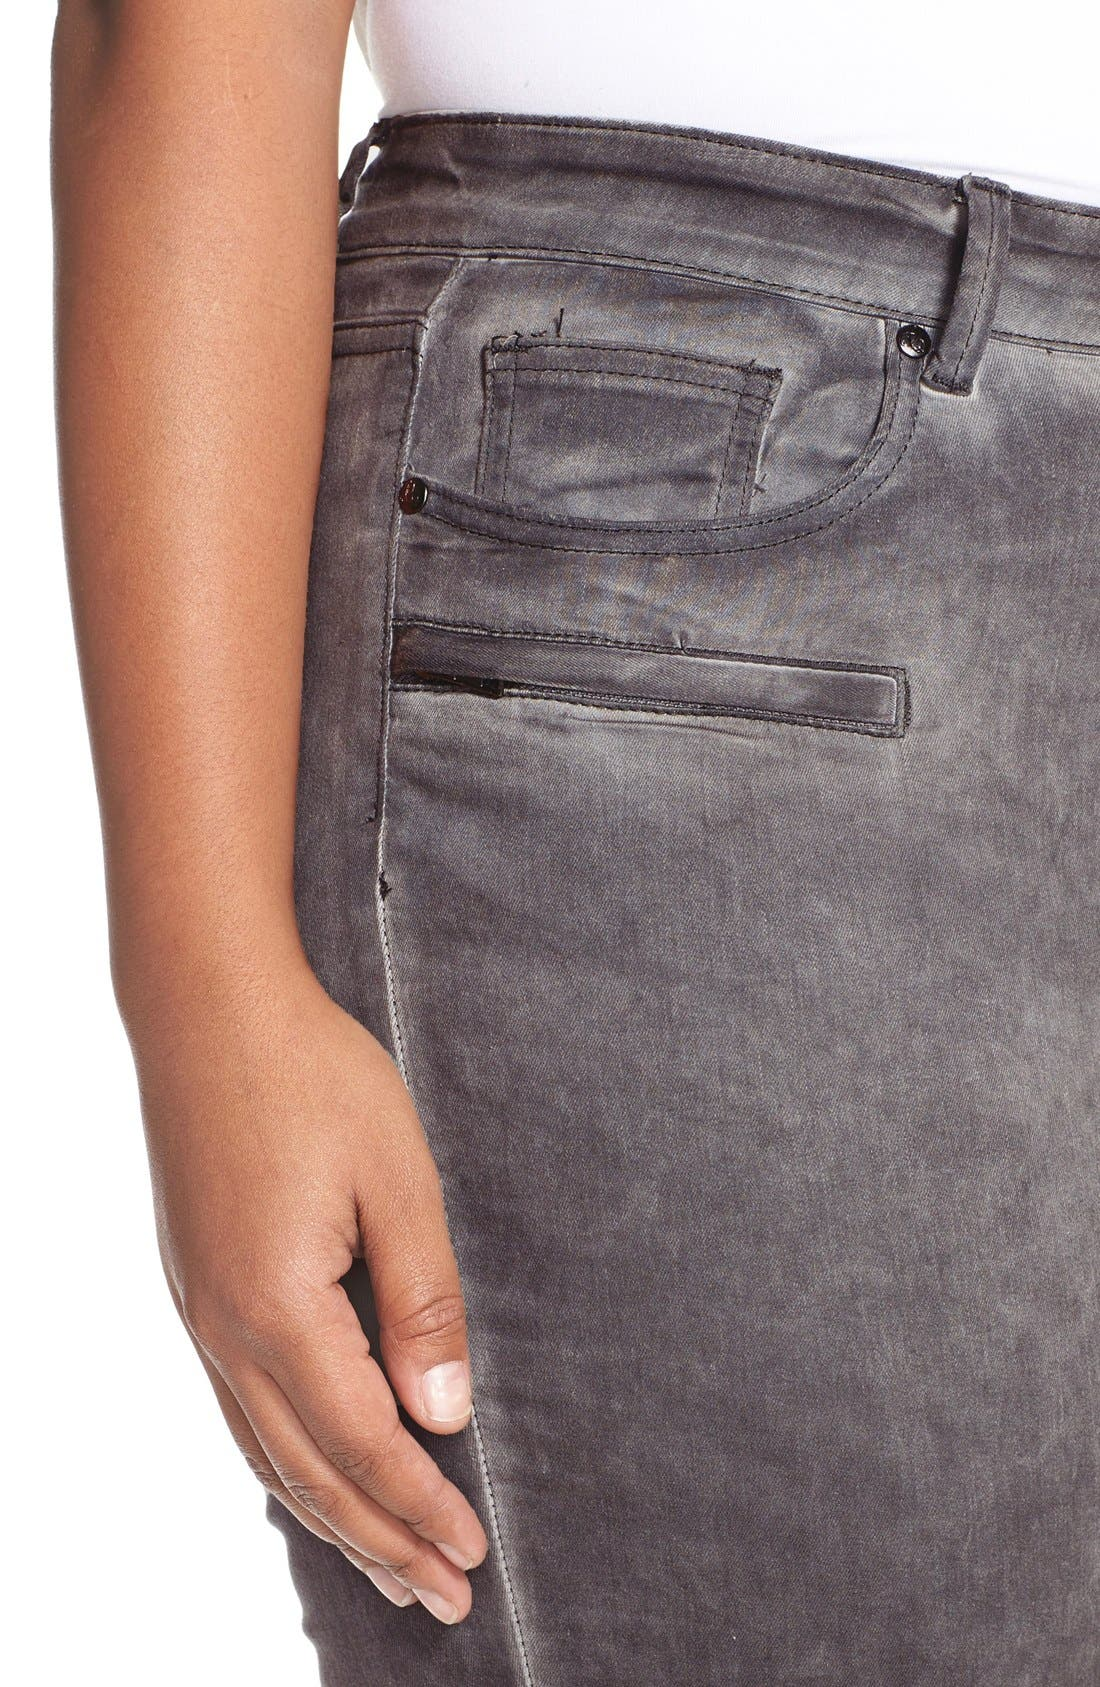 CITY CHIC, 'Silver' Stretch Skinny Jeans, Alternate thumbnail 5, color, 021